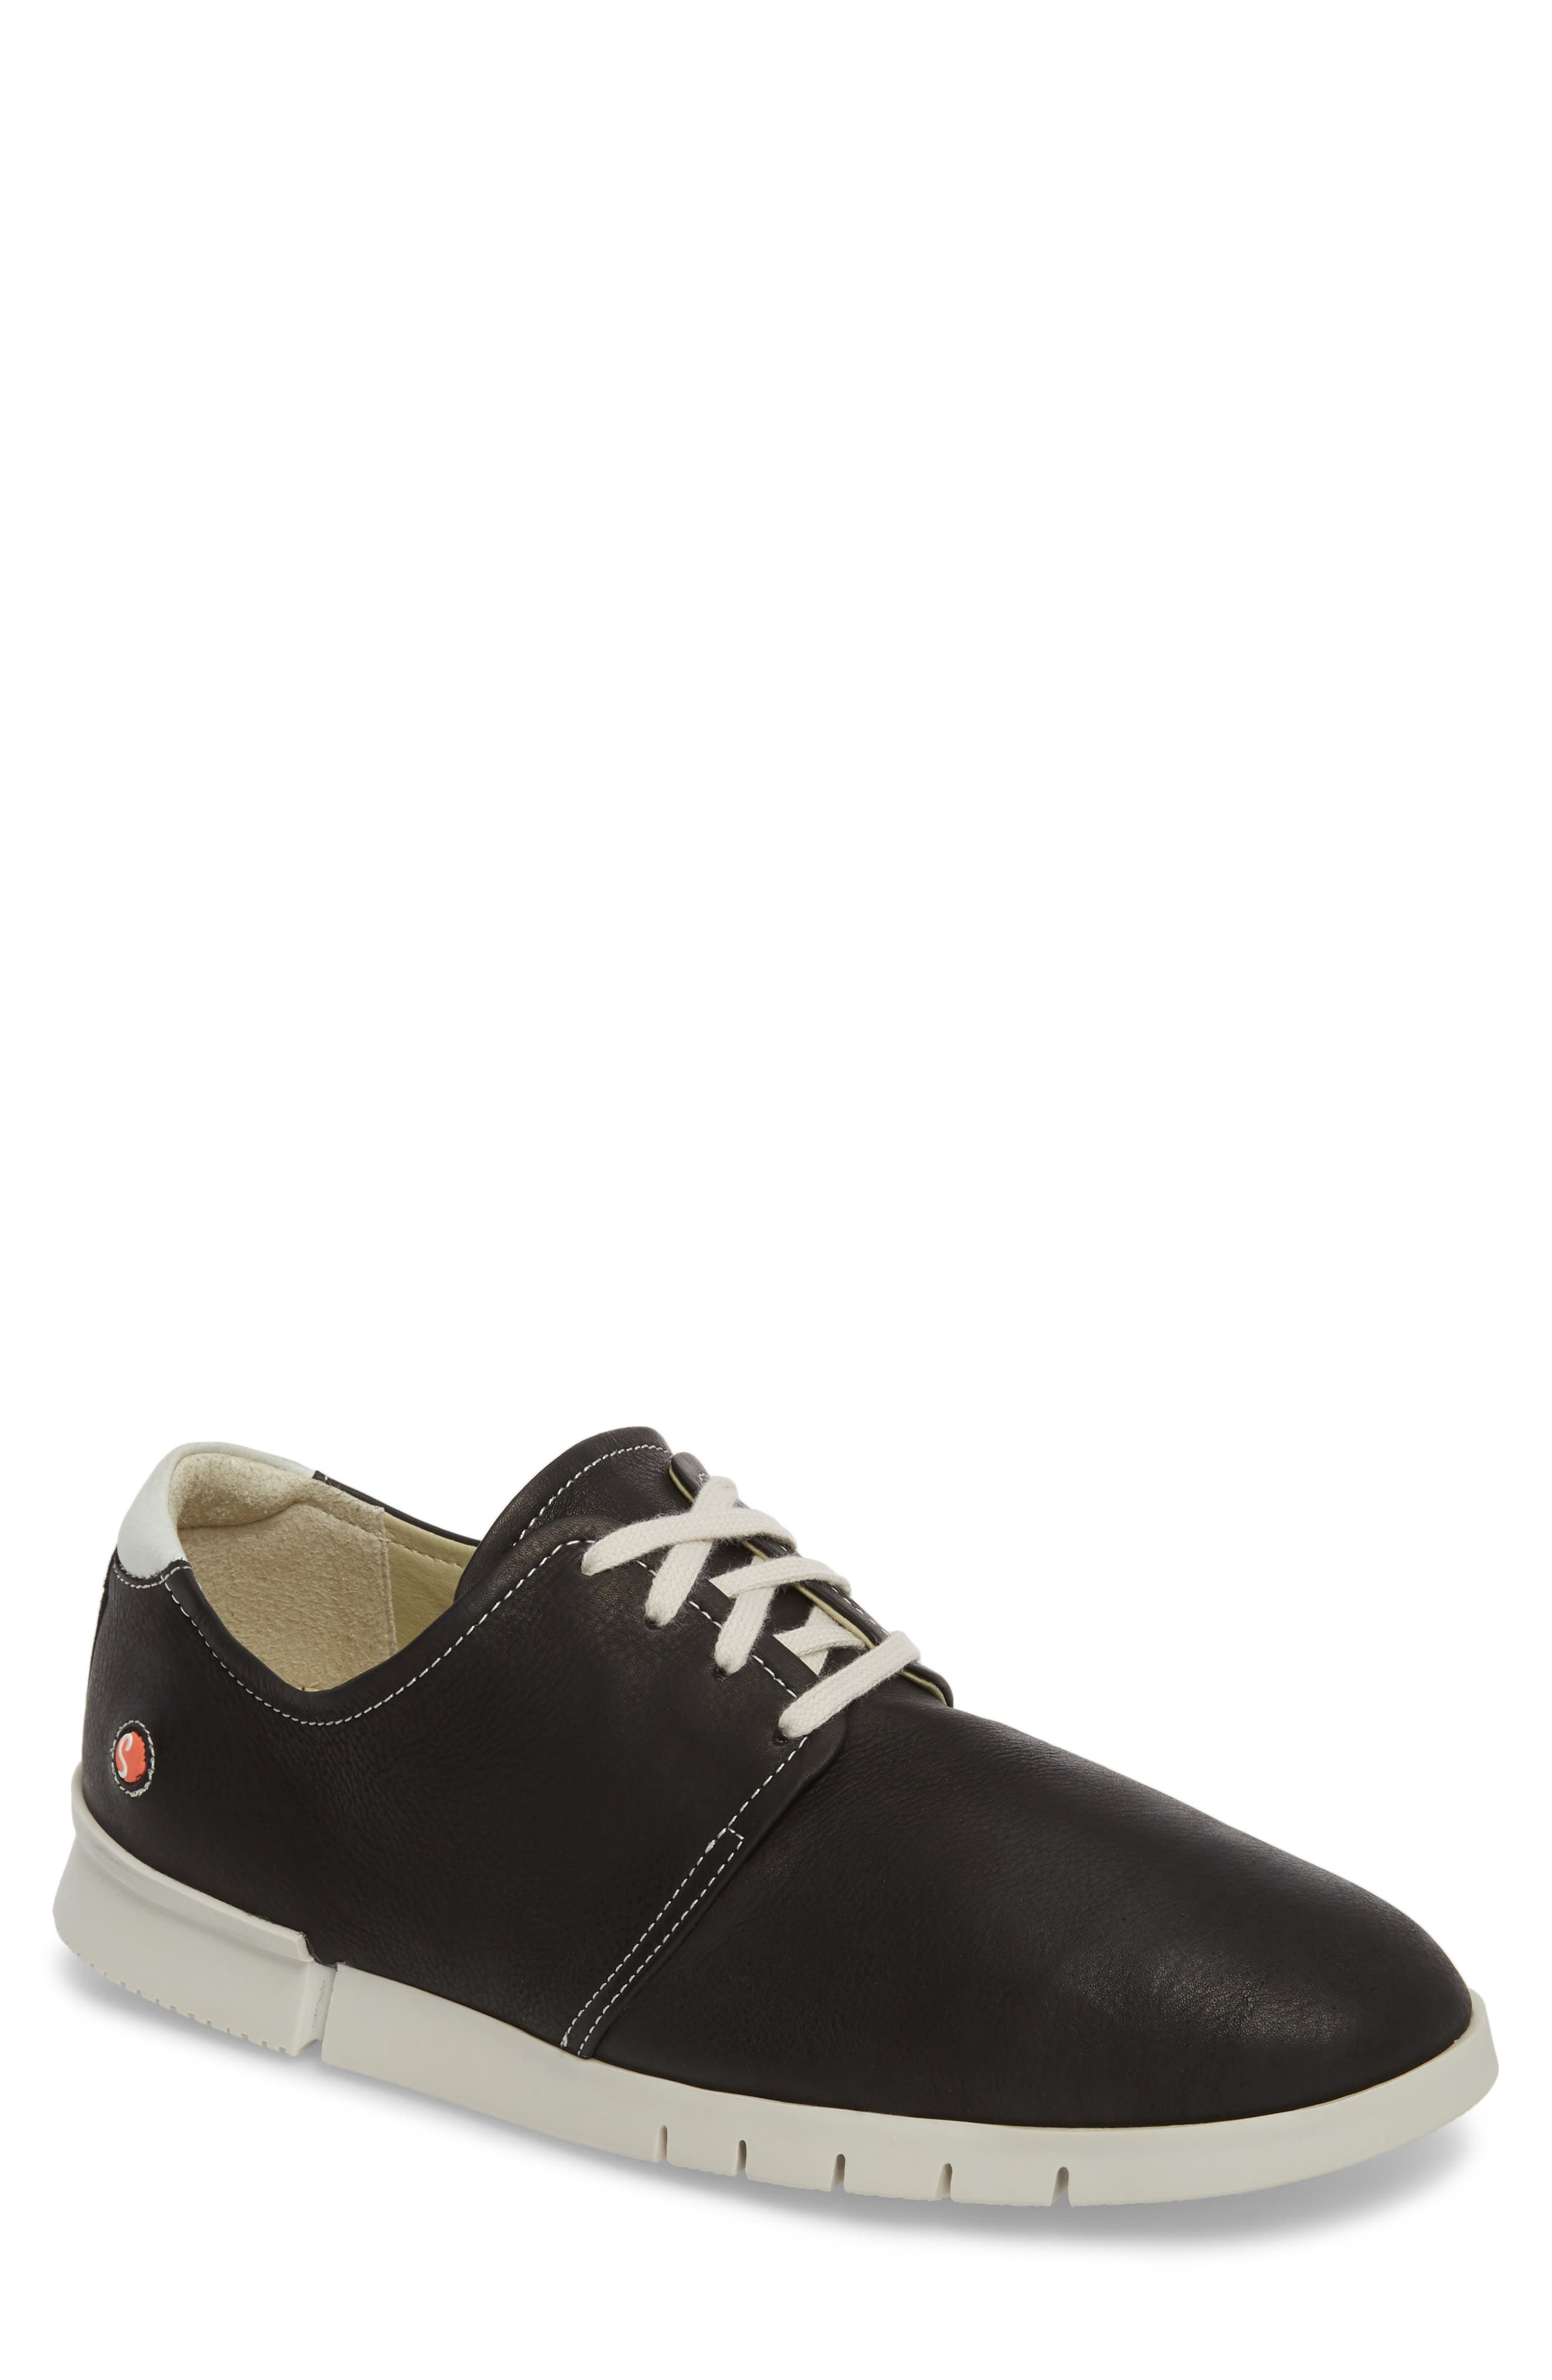 Cap Low Top Sneaker,                         Main,                         color, BLACK/ WHITE LEATHER